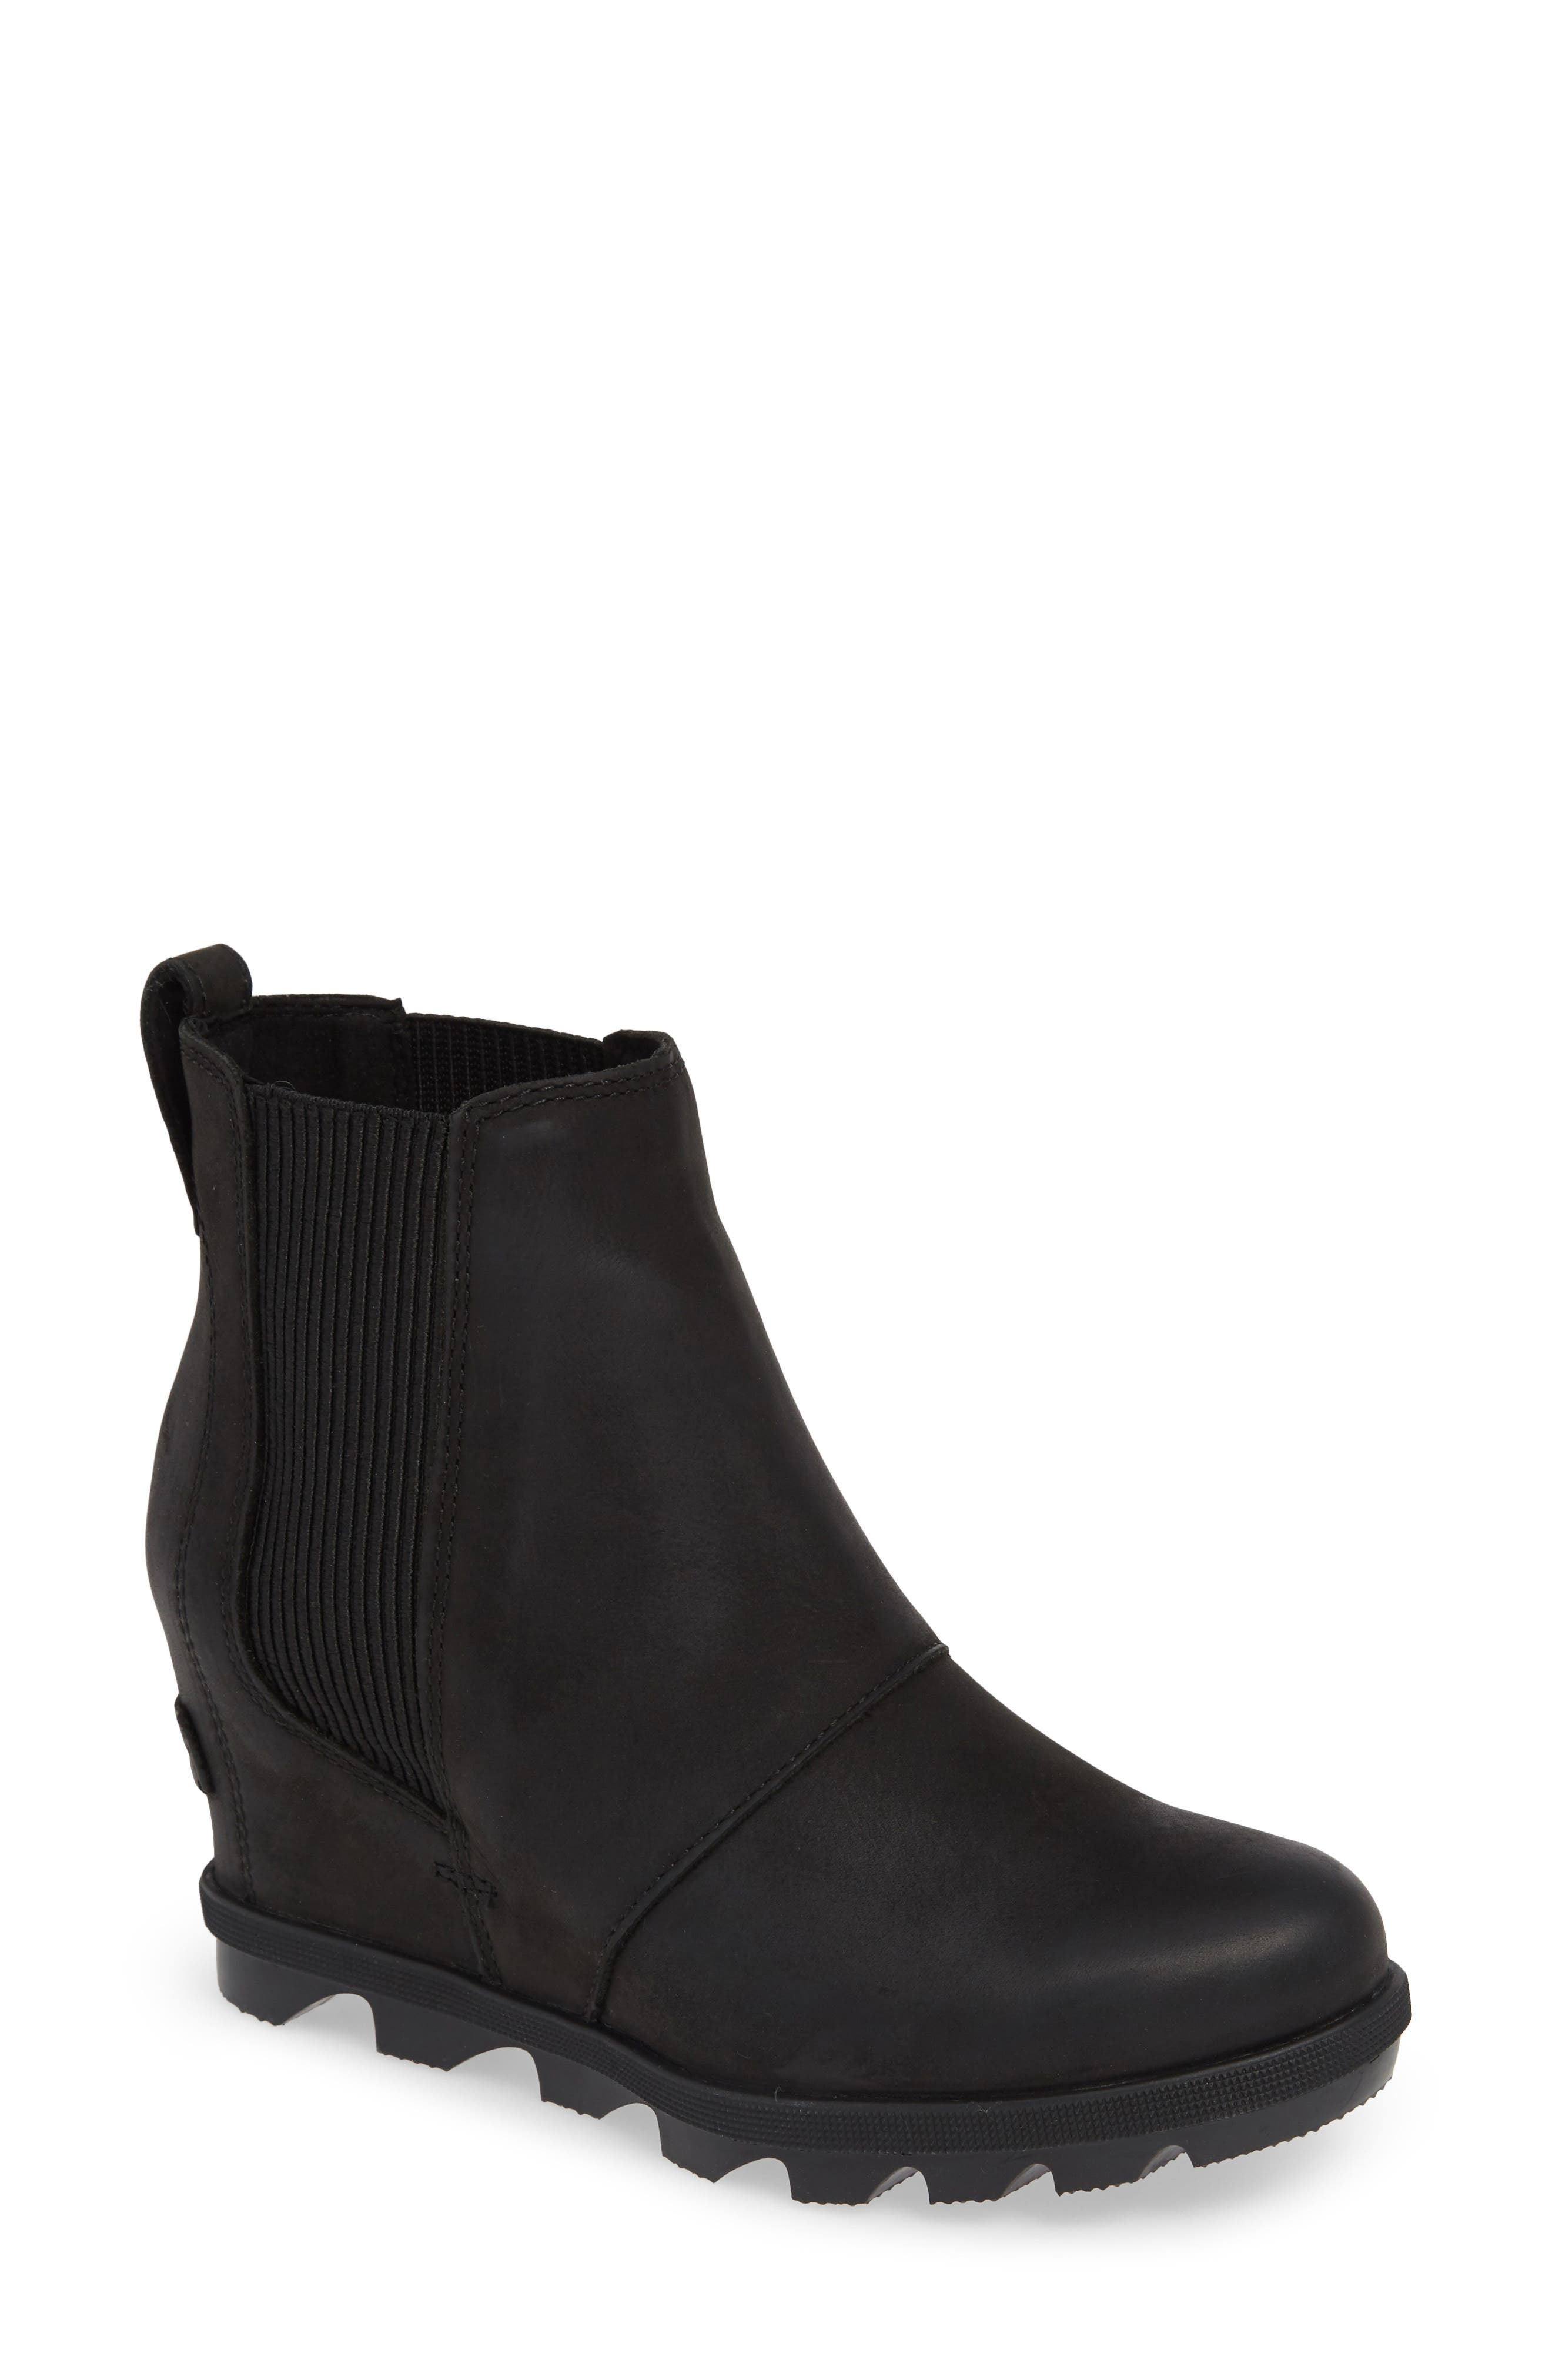 Sorel Joan Of Arctic Ii Waterproof Wedge Bootie, Black